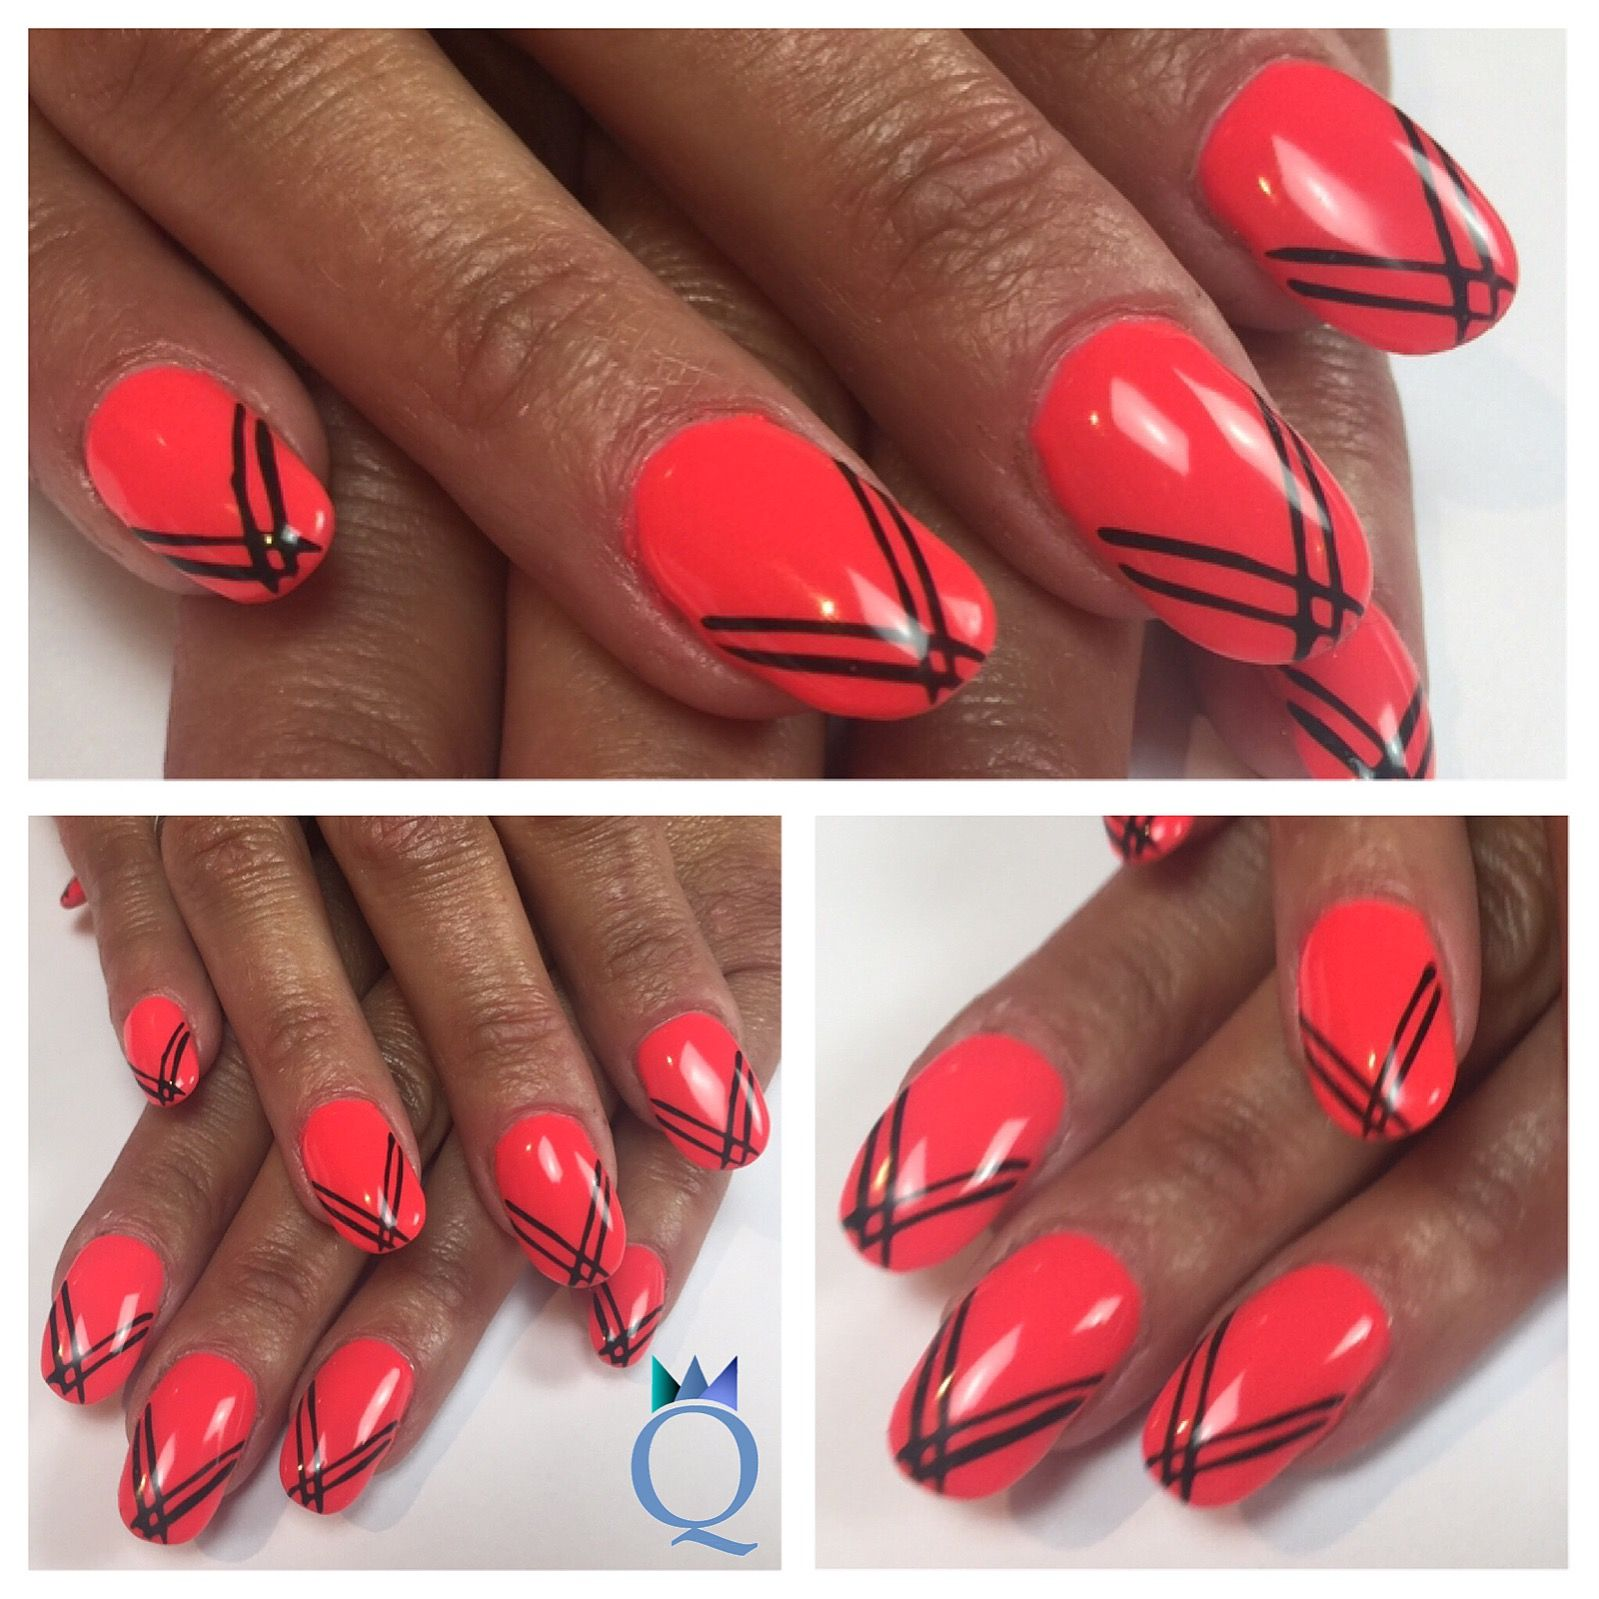 gelnails #nails #neonred #akyado #black #stripes #gelnägel #nägel ...